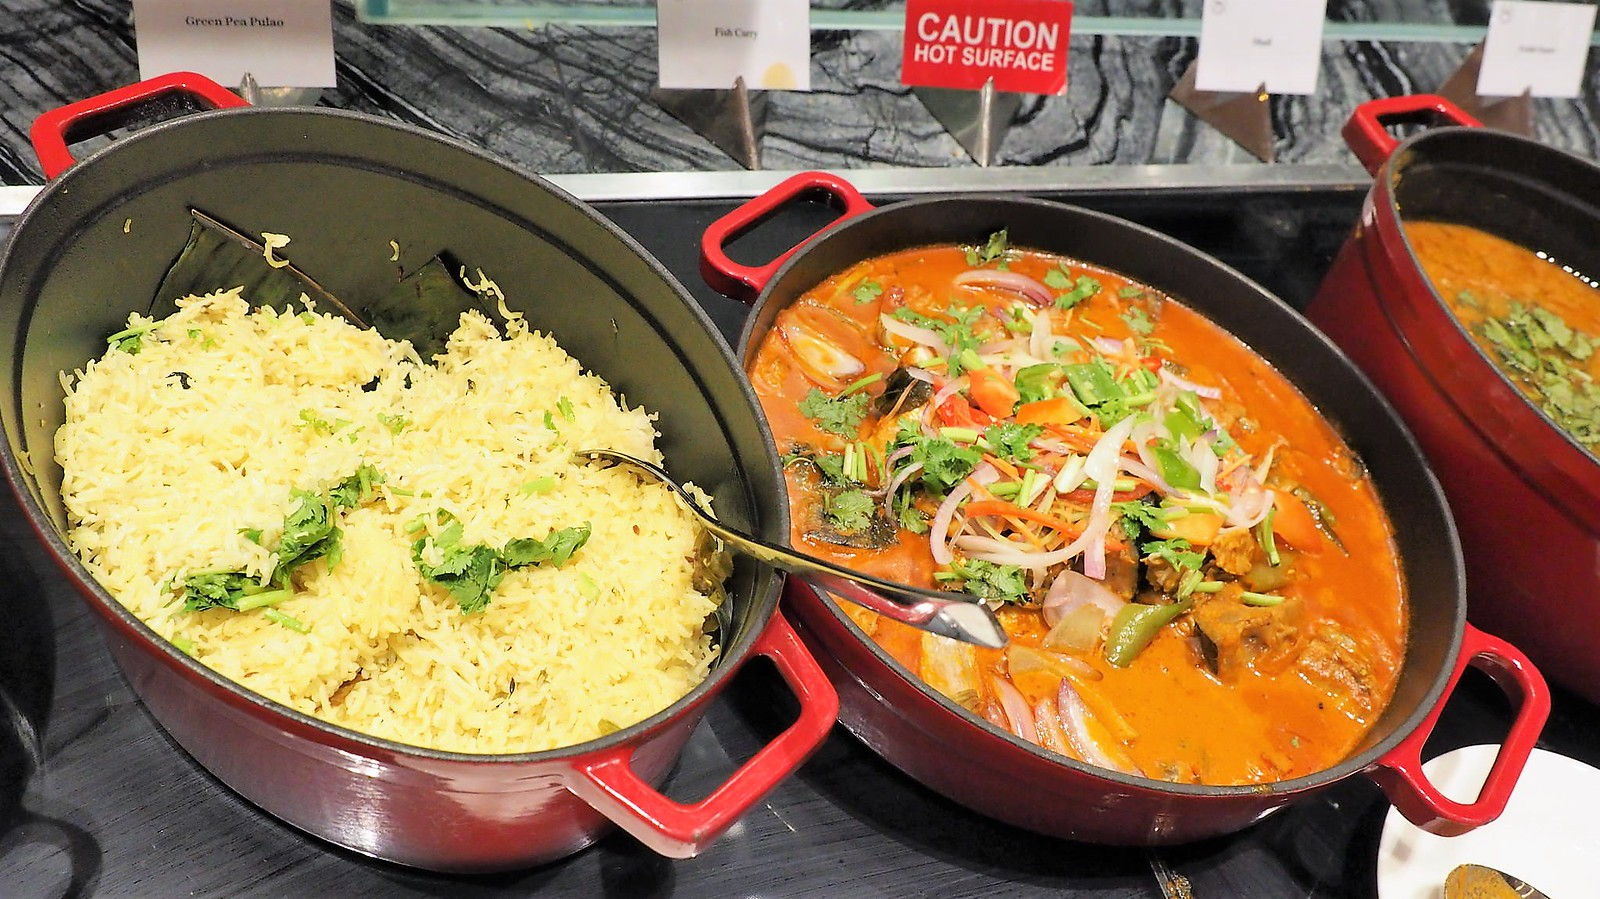 Green pea pulao and curry fish